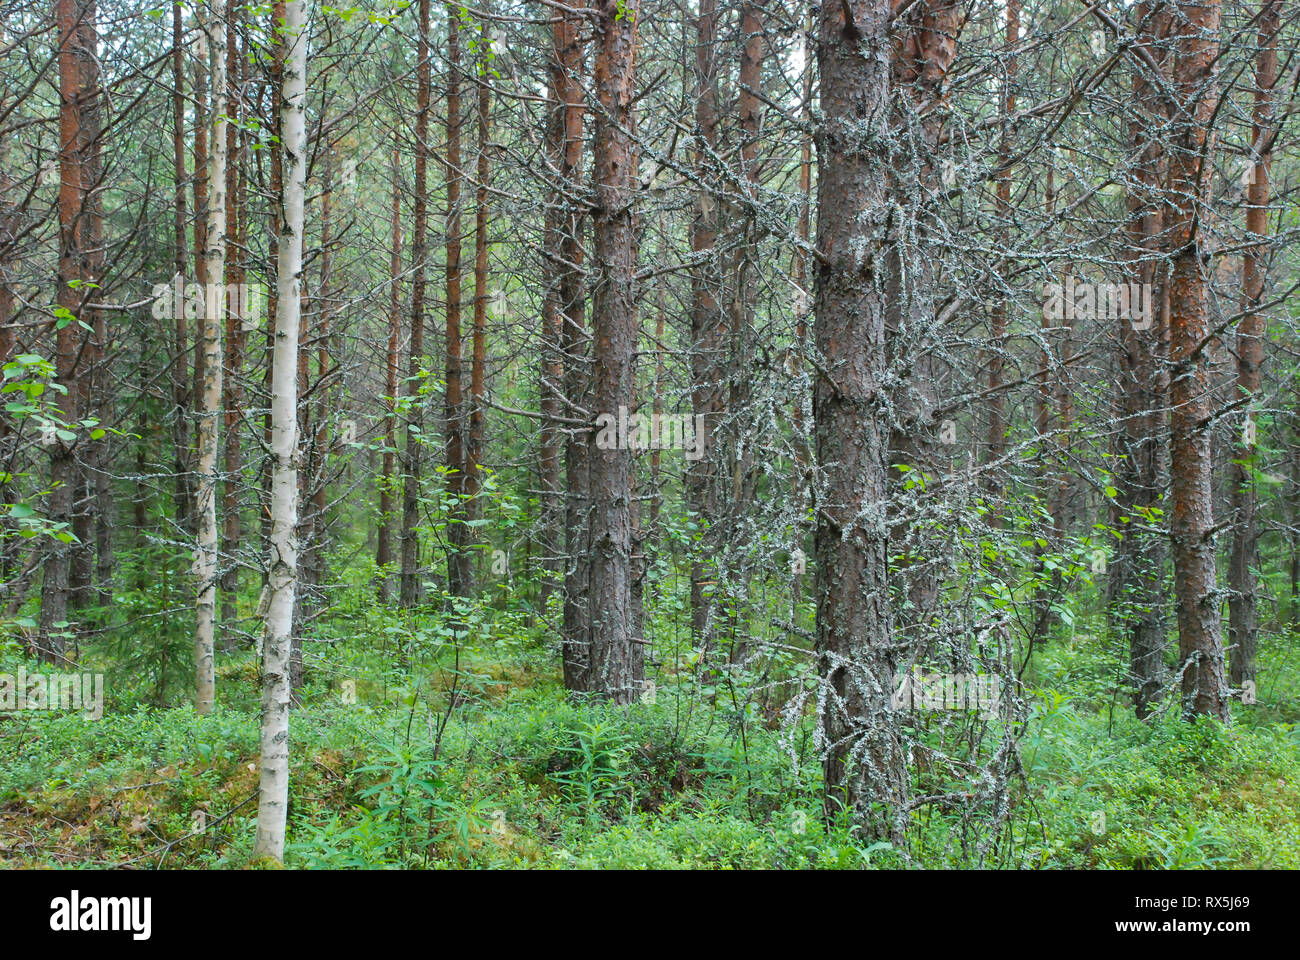 It is bound by tundra to the north and by temperate deciduous forests or savanna/prairie/steppes to the south. Taiga Forest Boreal Forest Biome Natural Wild Landscape In North Eastern Finland Europe With Coniferous Trees Including Pines And Spruces Stock Photo Alamy